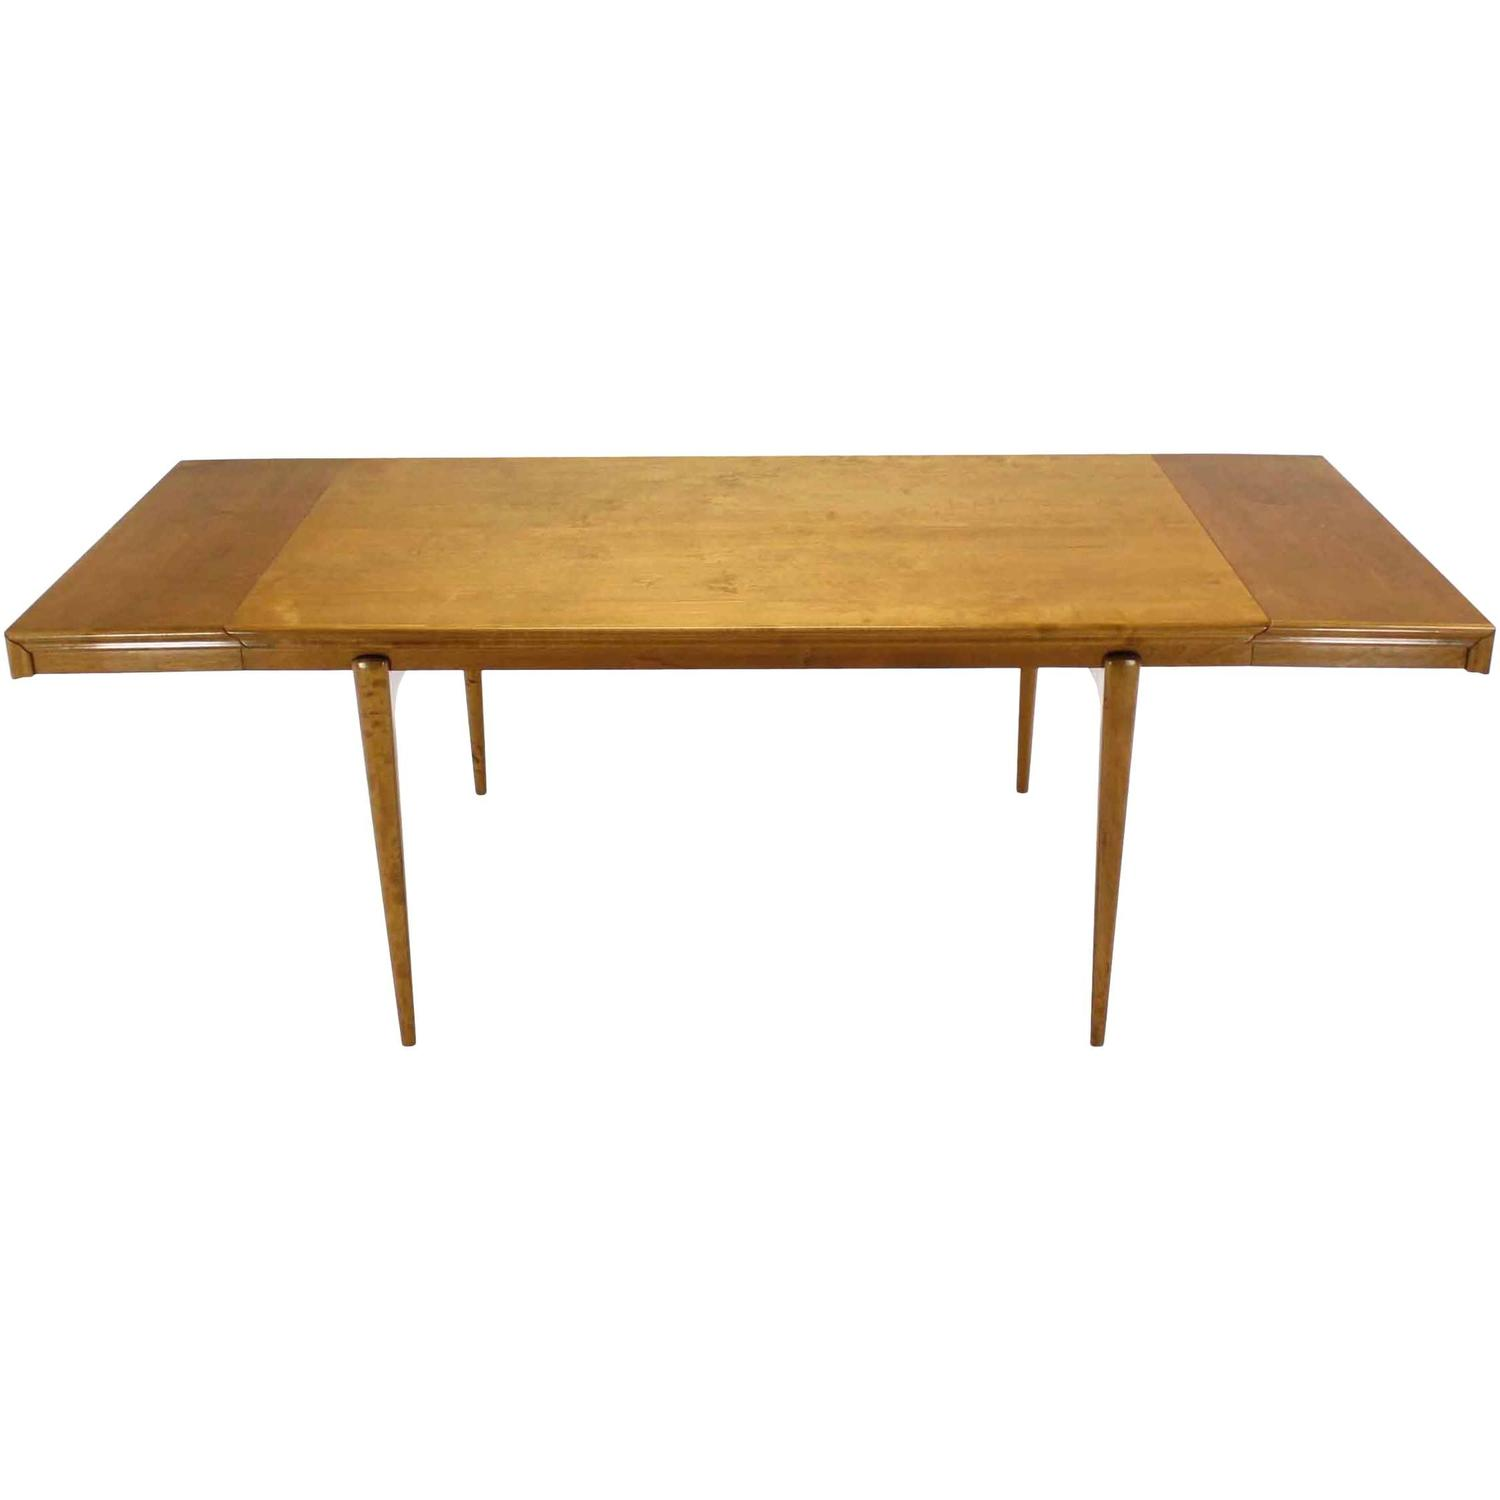 swedish blond birch dining table by edmond spence for sale at 1stdibs